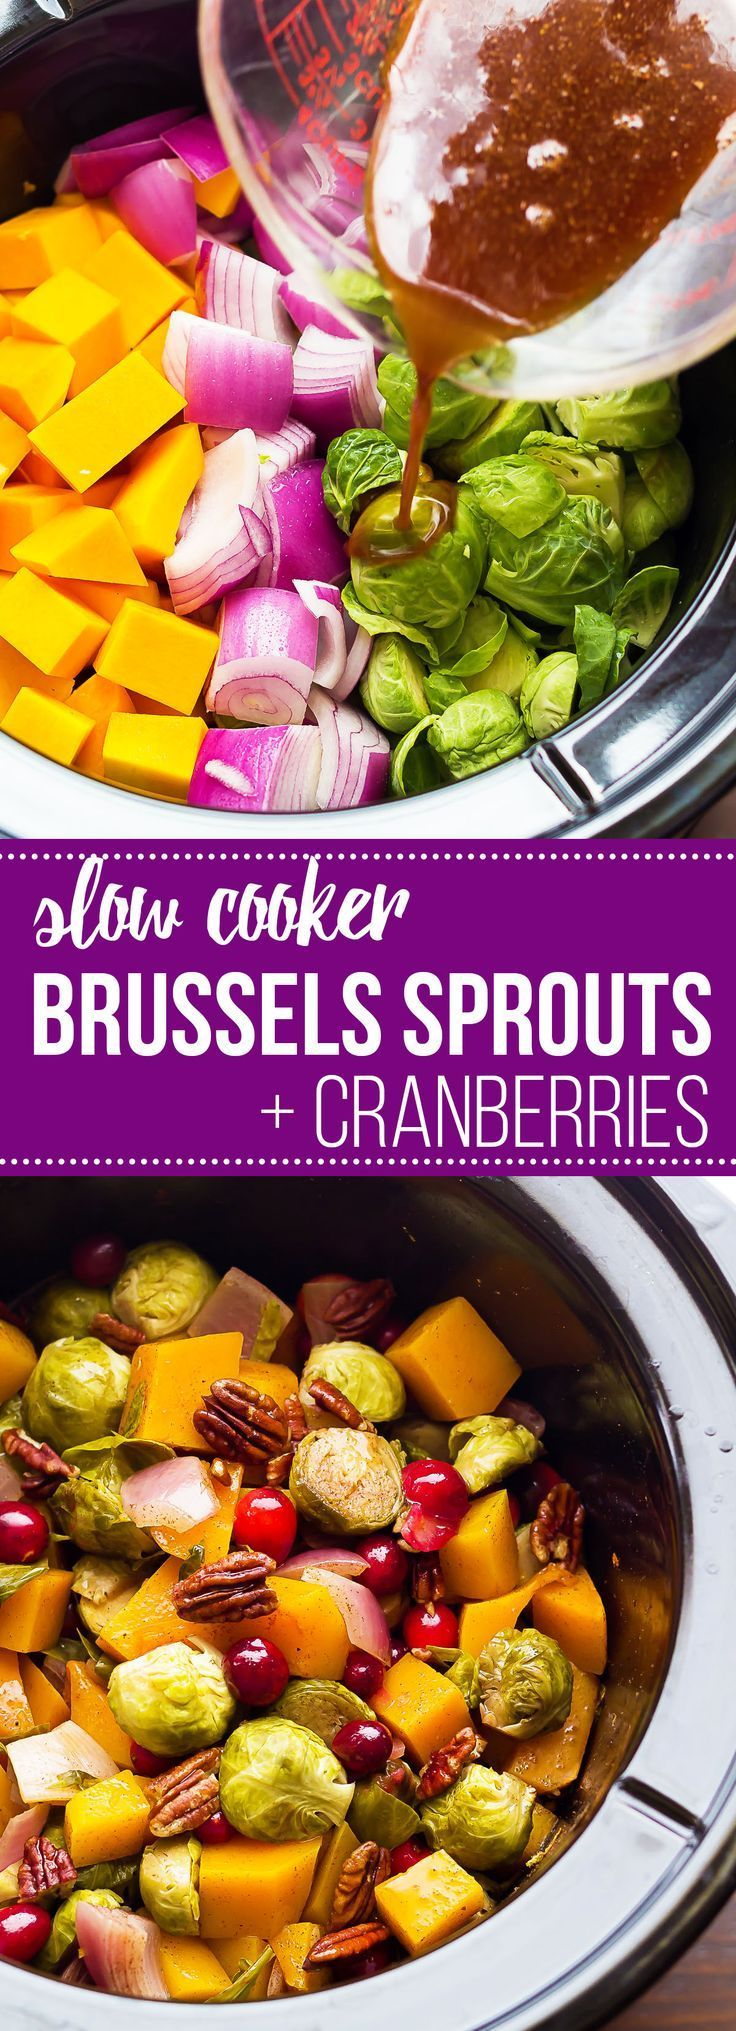 These Slow Cooker Brussels Sprouts with Cranberries, Pecans and Butternut Squash is the easiest lighter holiday side dish. Perfect for Thanksgiving or Christmas!